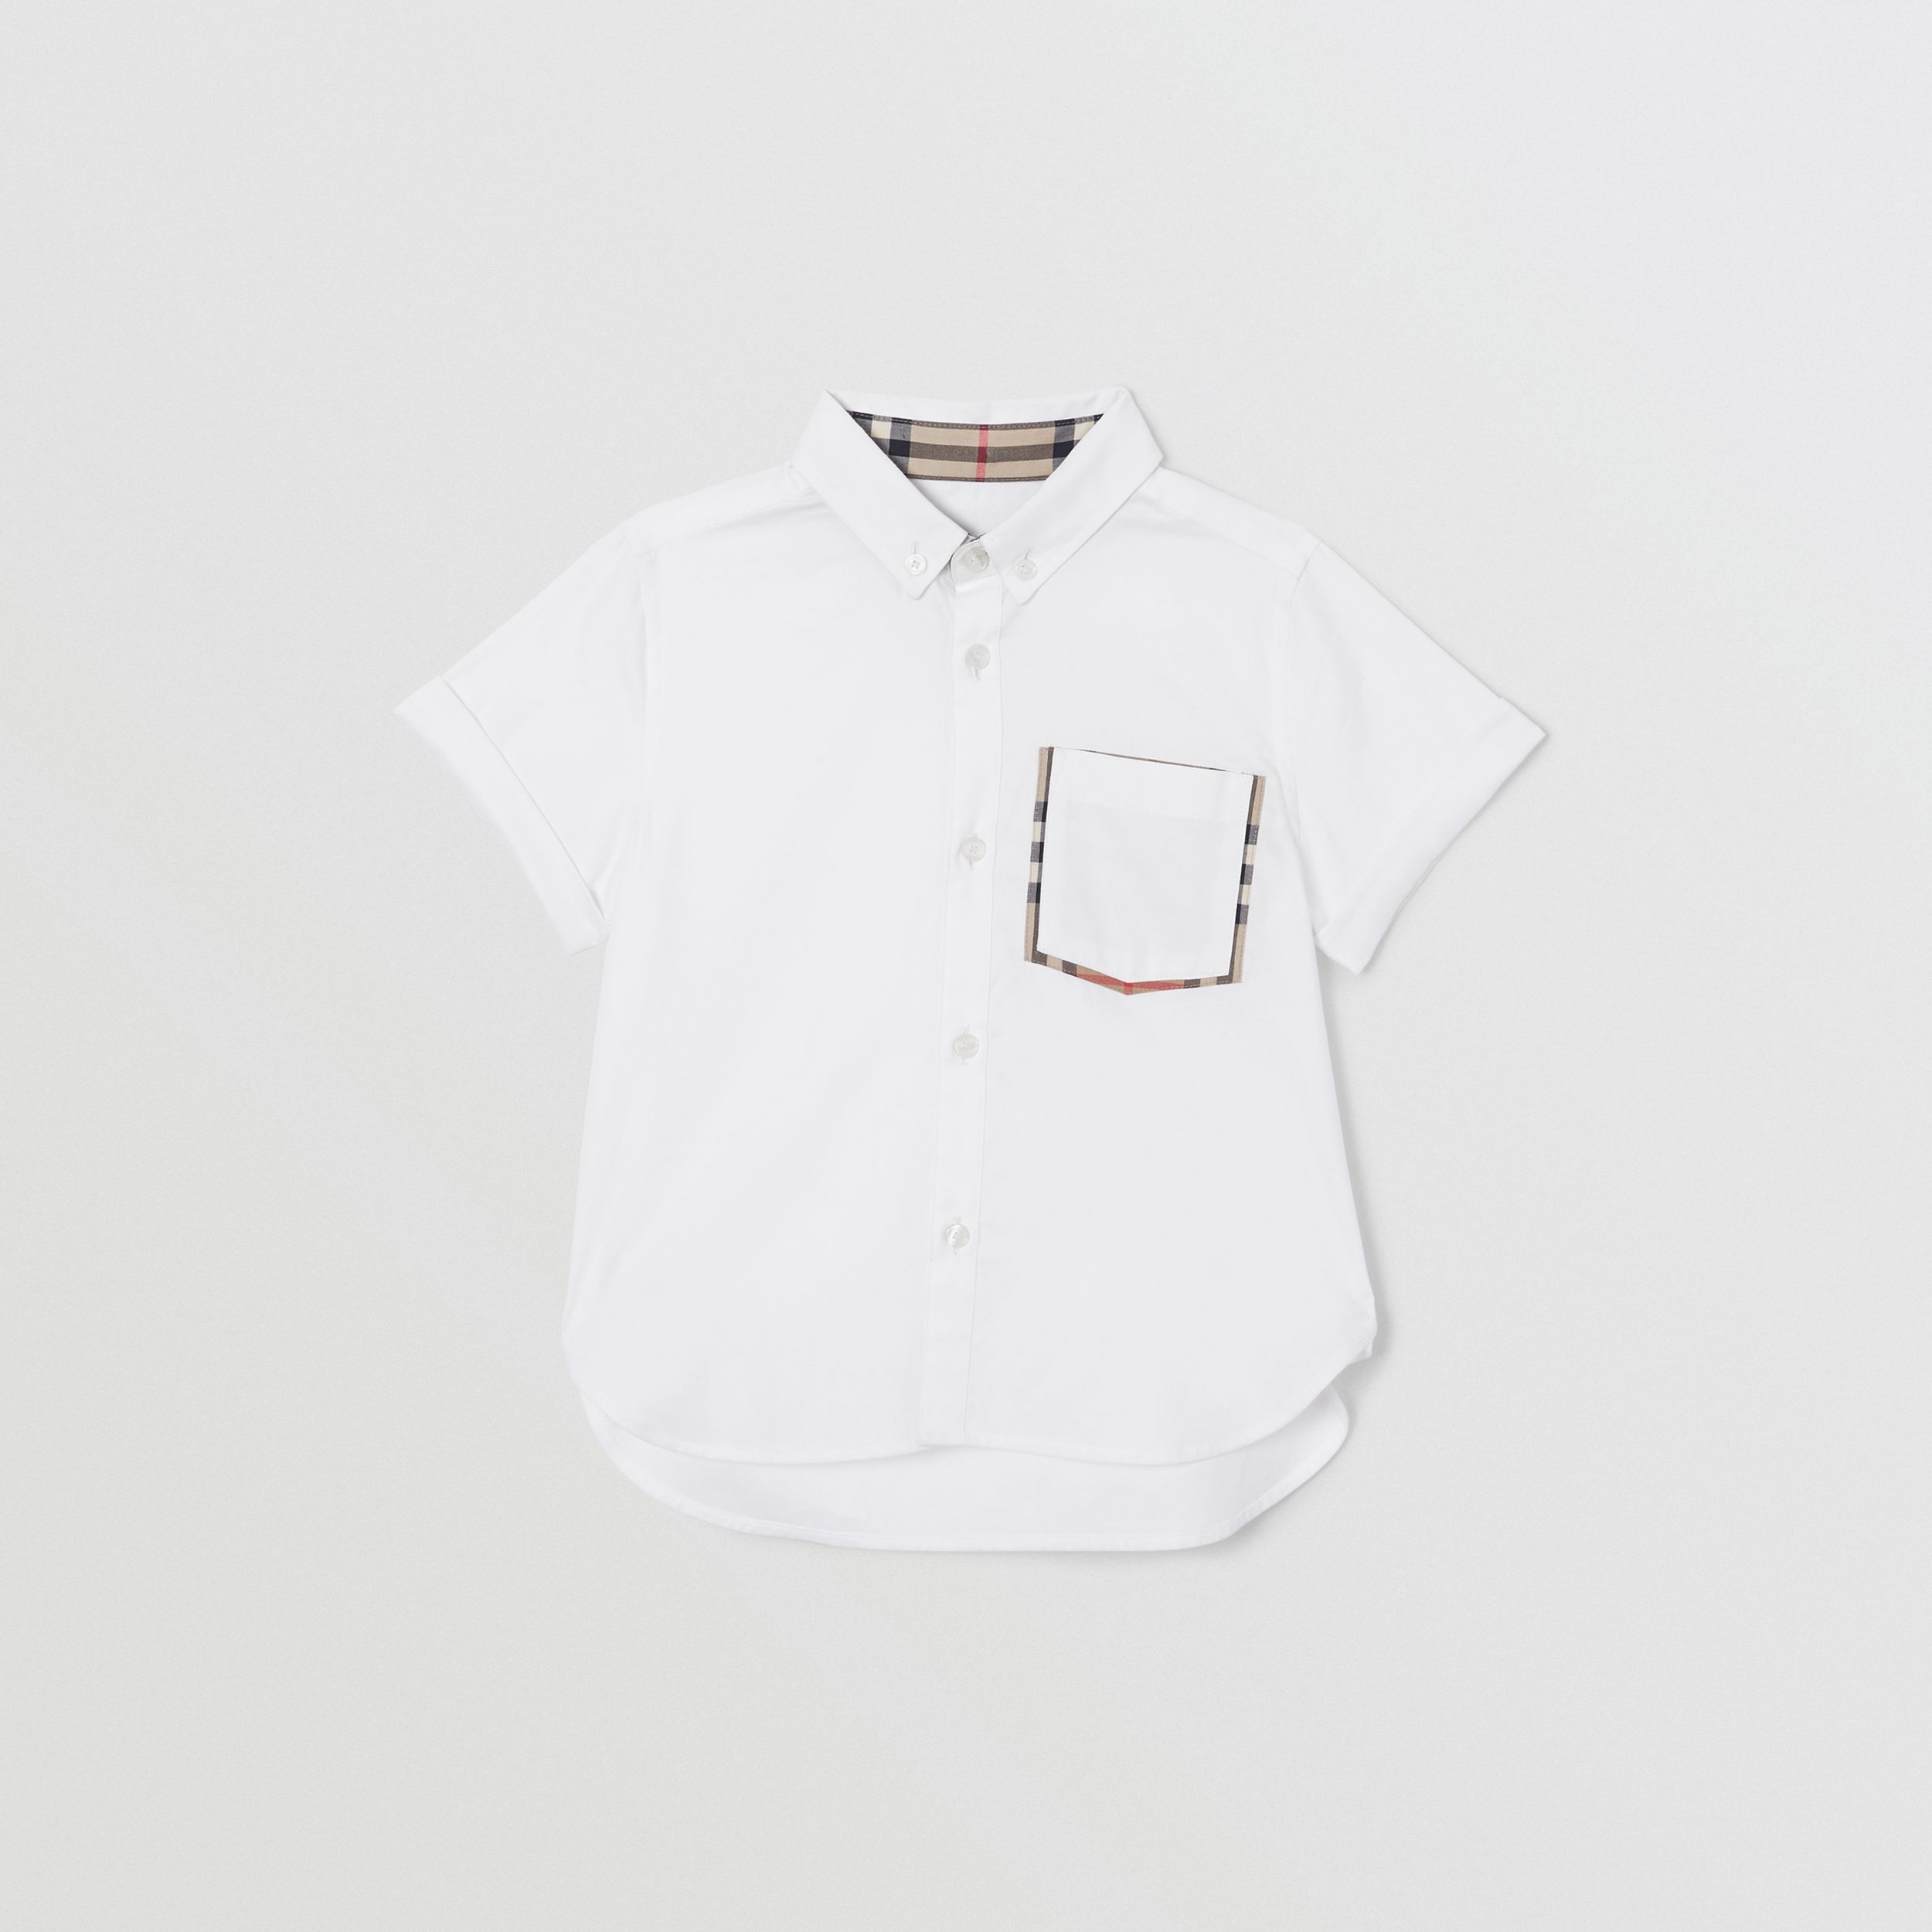 Short-sleeve Vintage Check Trim Cotton Oxford Shirt in White | Burberry Canada - 1